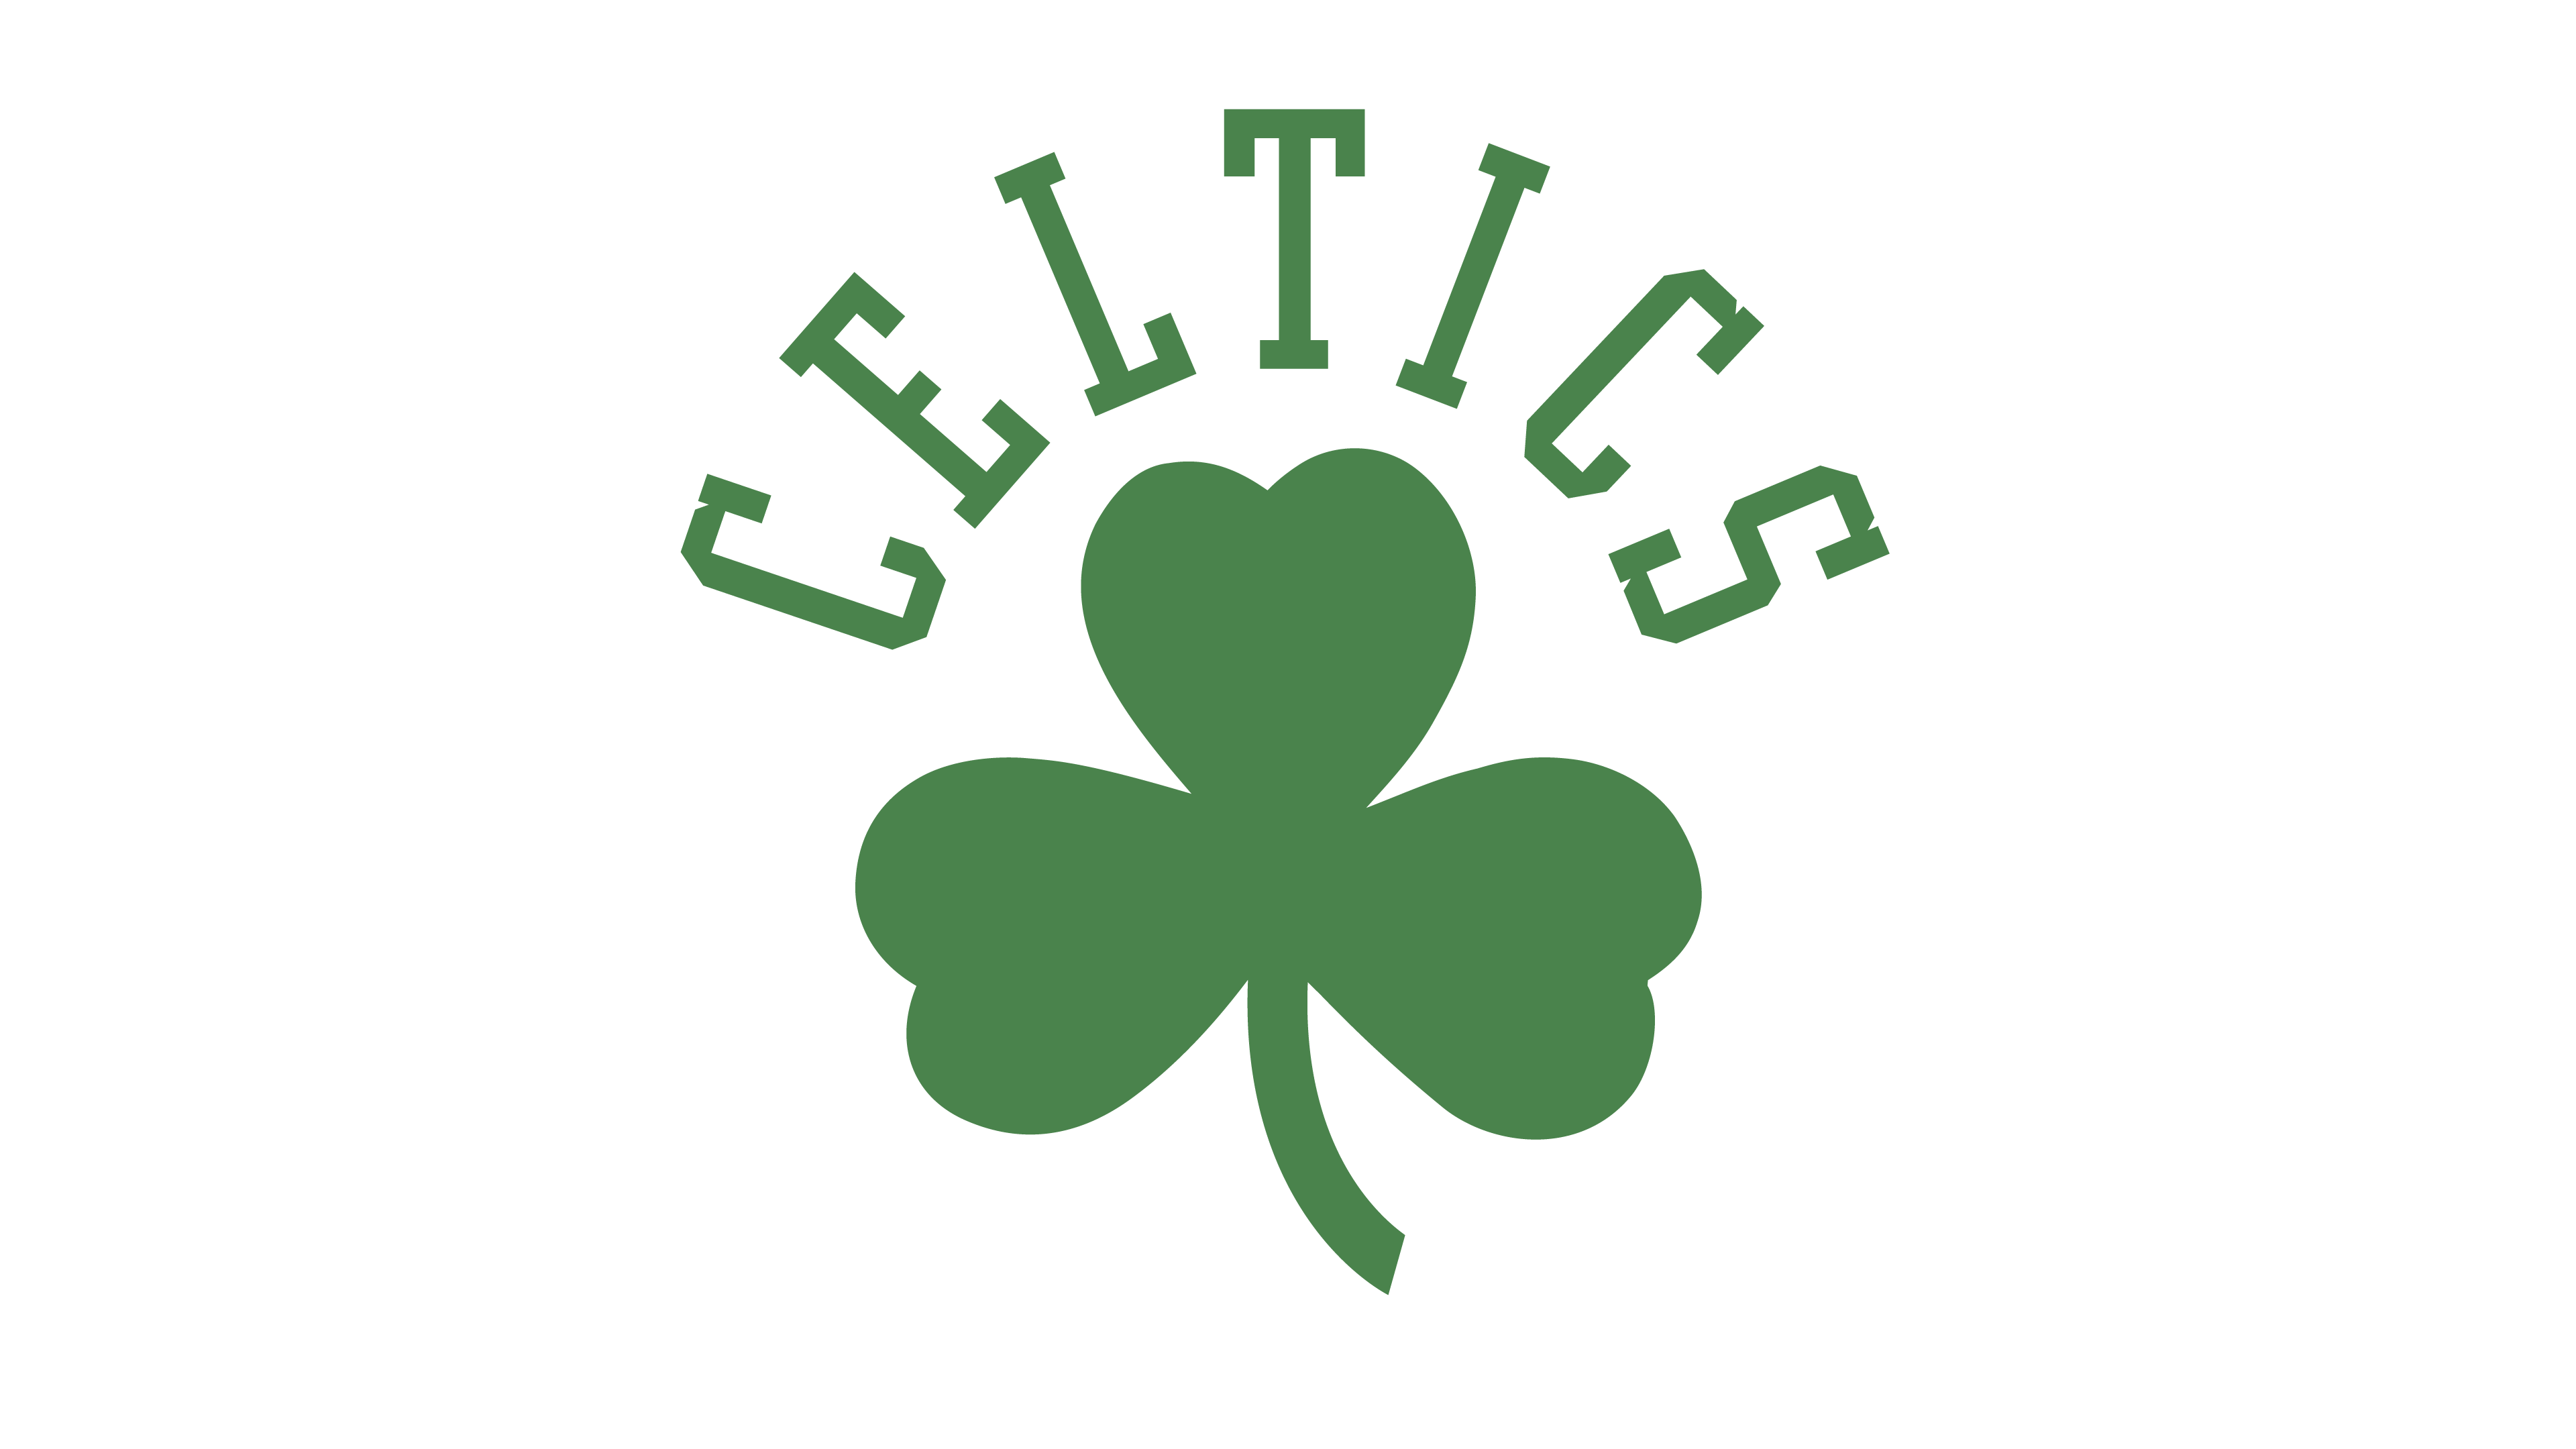 Boston Celtics Logo - Boston Celtics Logo - Interesting History of the Team Name and emblem